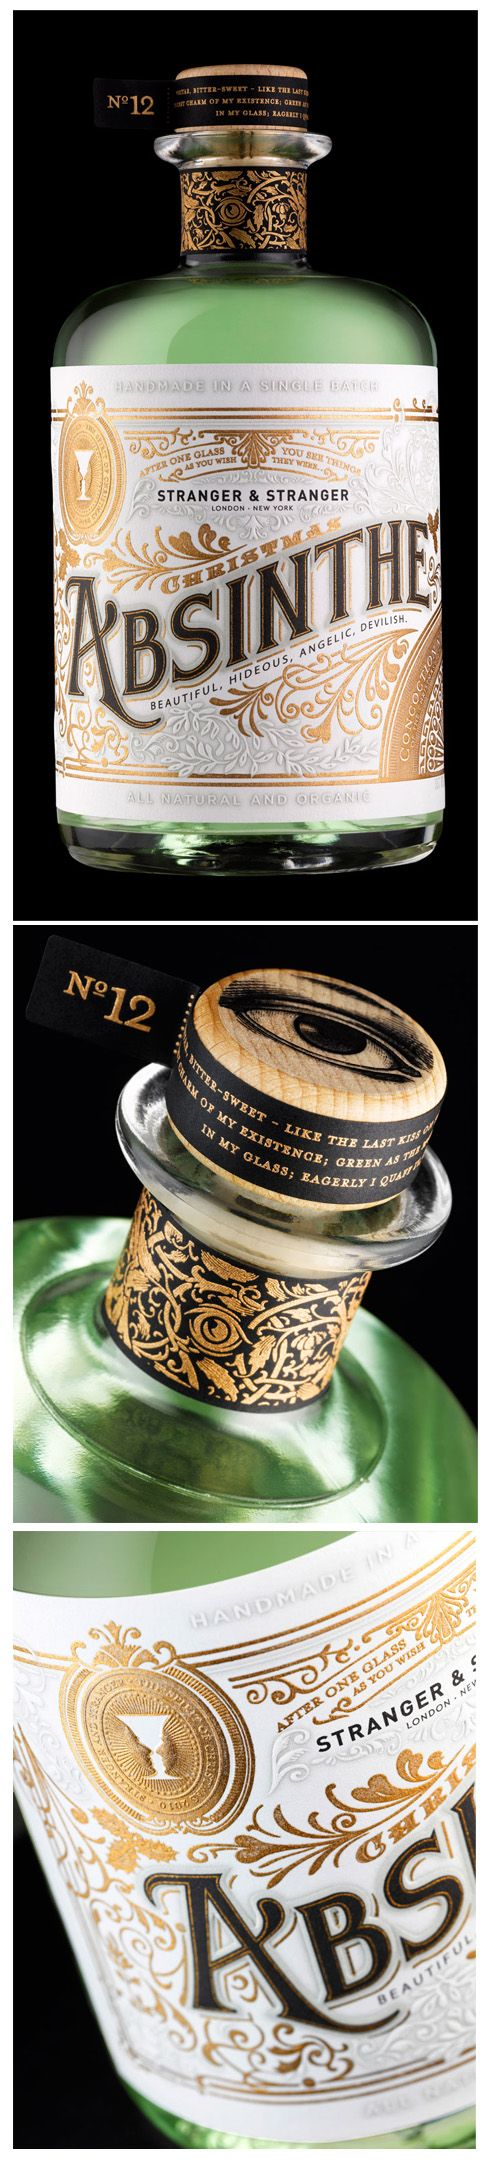 Very distinctive and attractive label for 'Absinthe' designed by Stranger & Stranger. Printed by Baddeley Brothers.